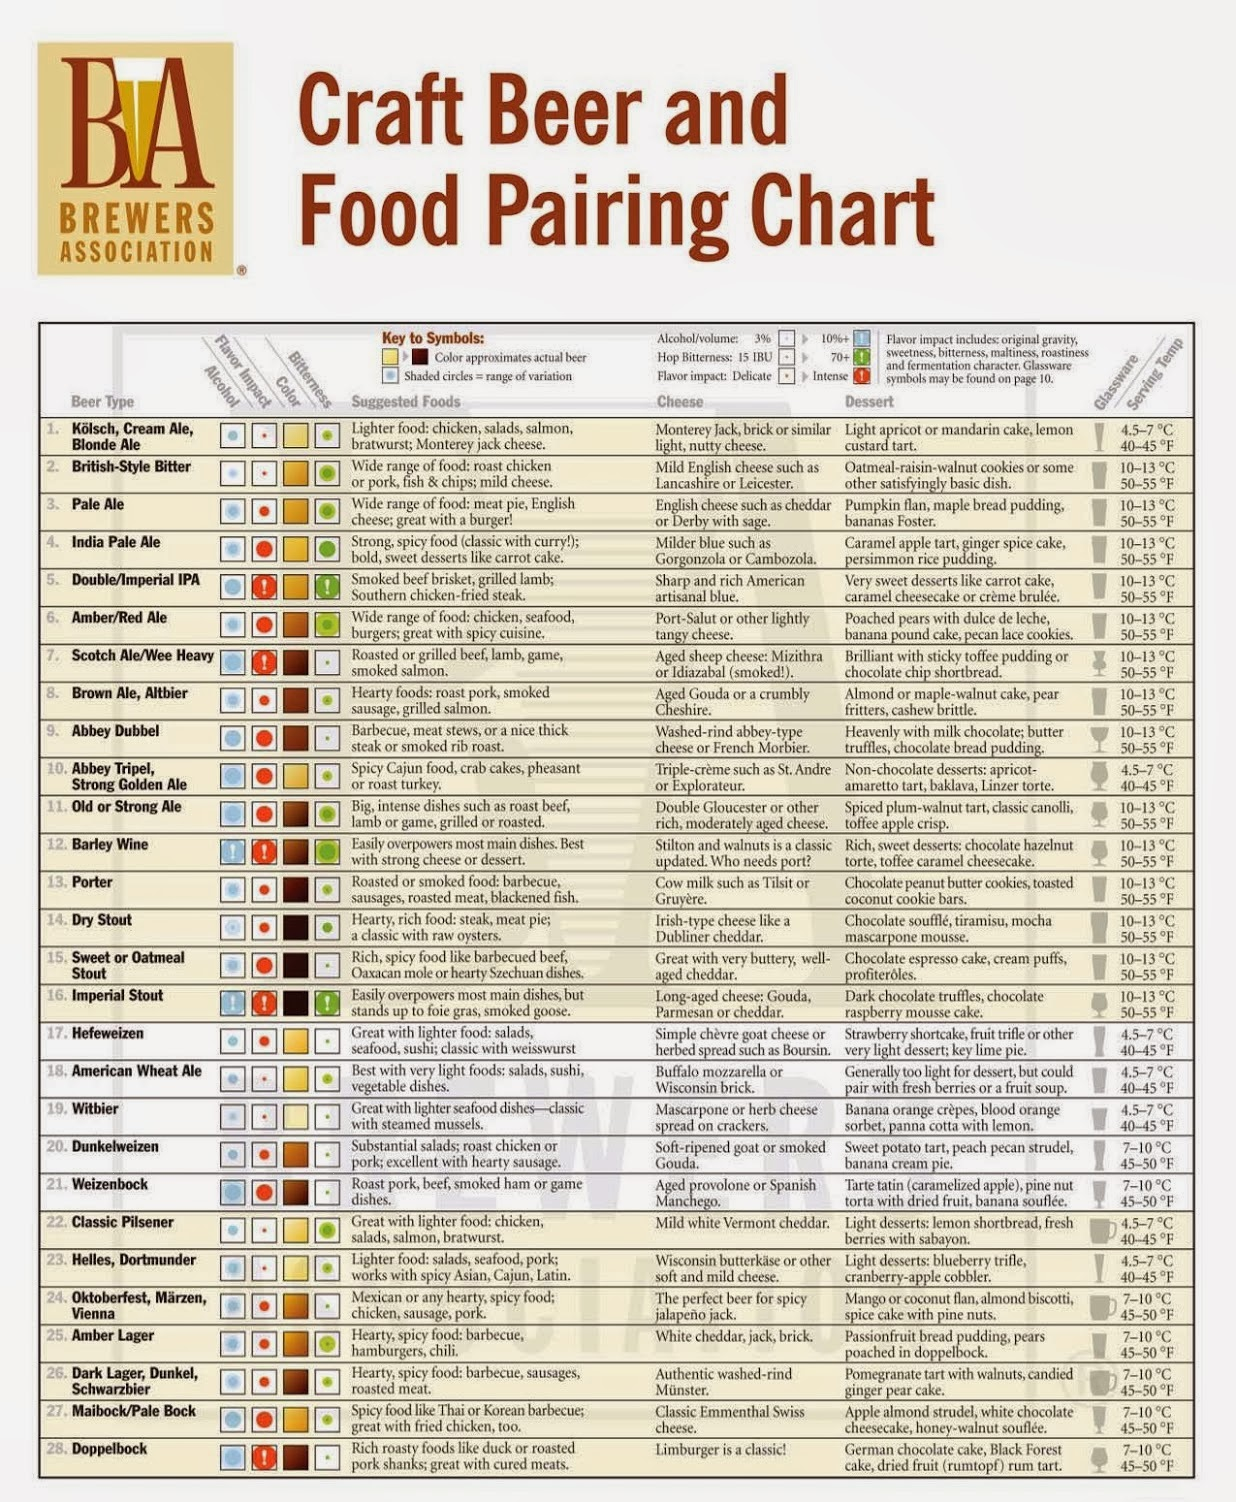 Beer and Food Pairing Chart